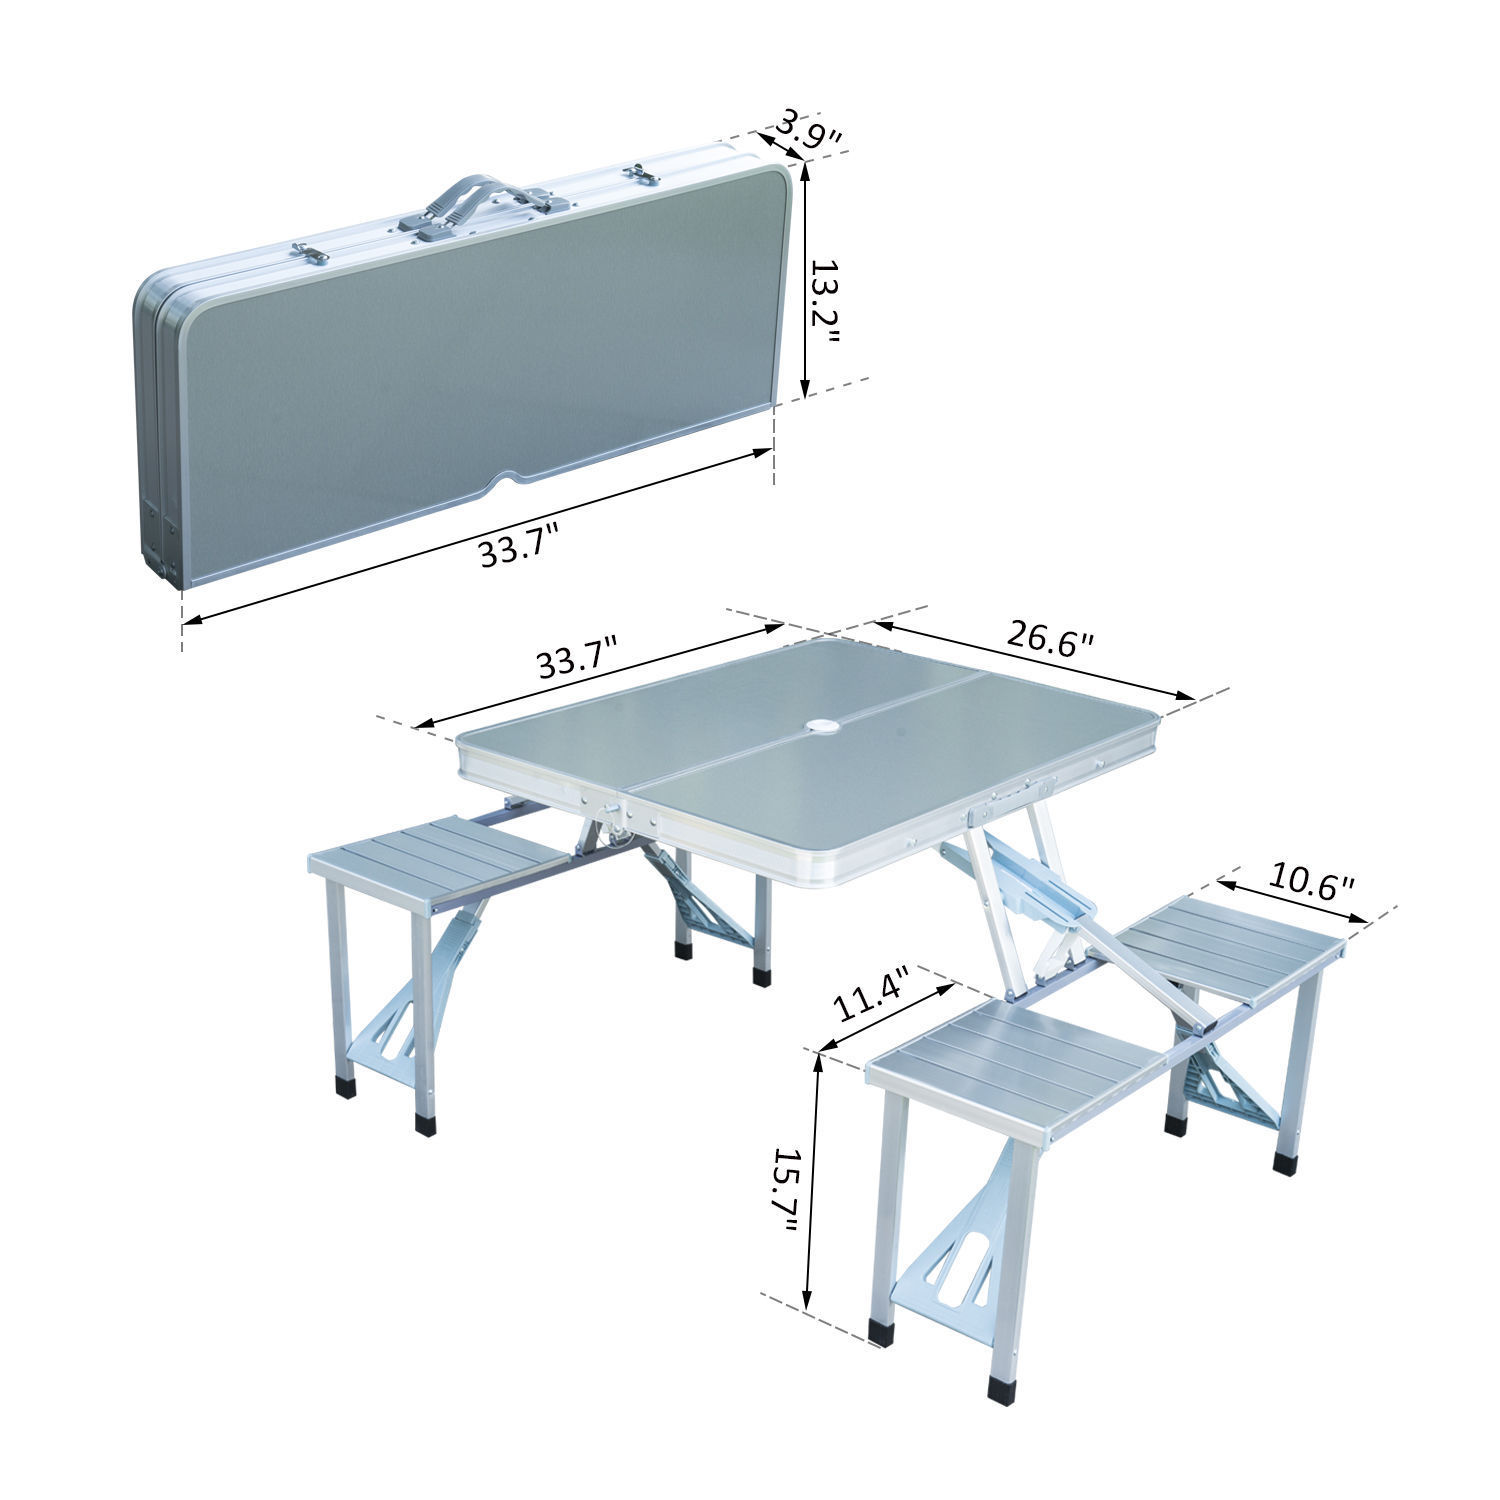 Outsunny Outdoor Aluminum Portable Folding Camp Suitcase Picnic Table with 4 Seats, Silver 5